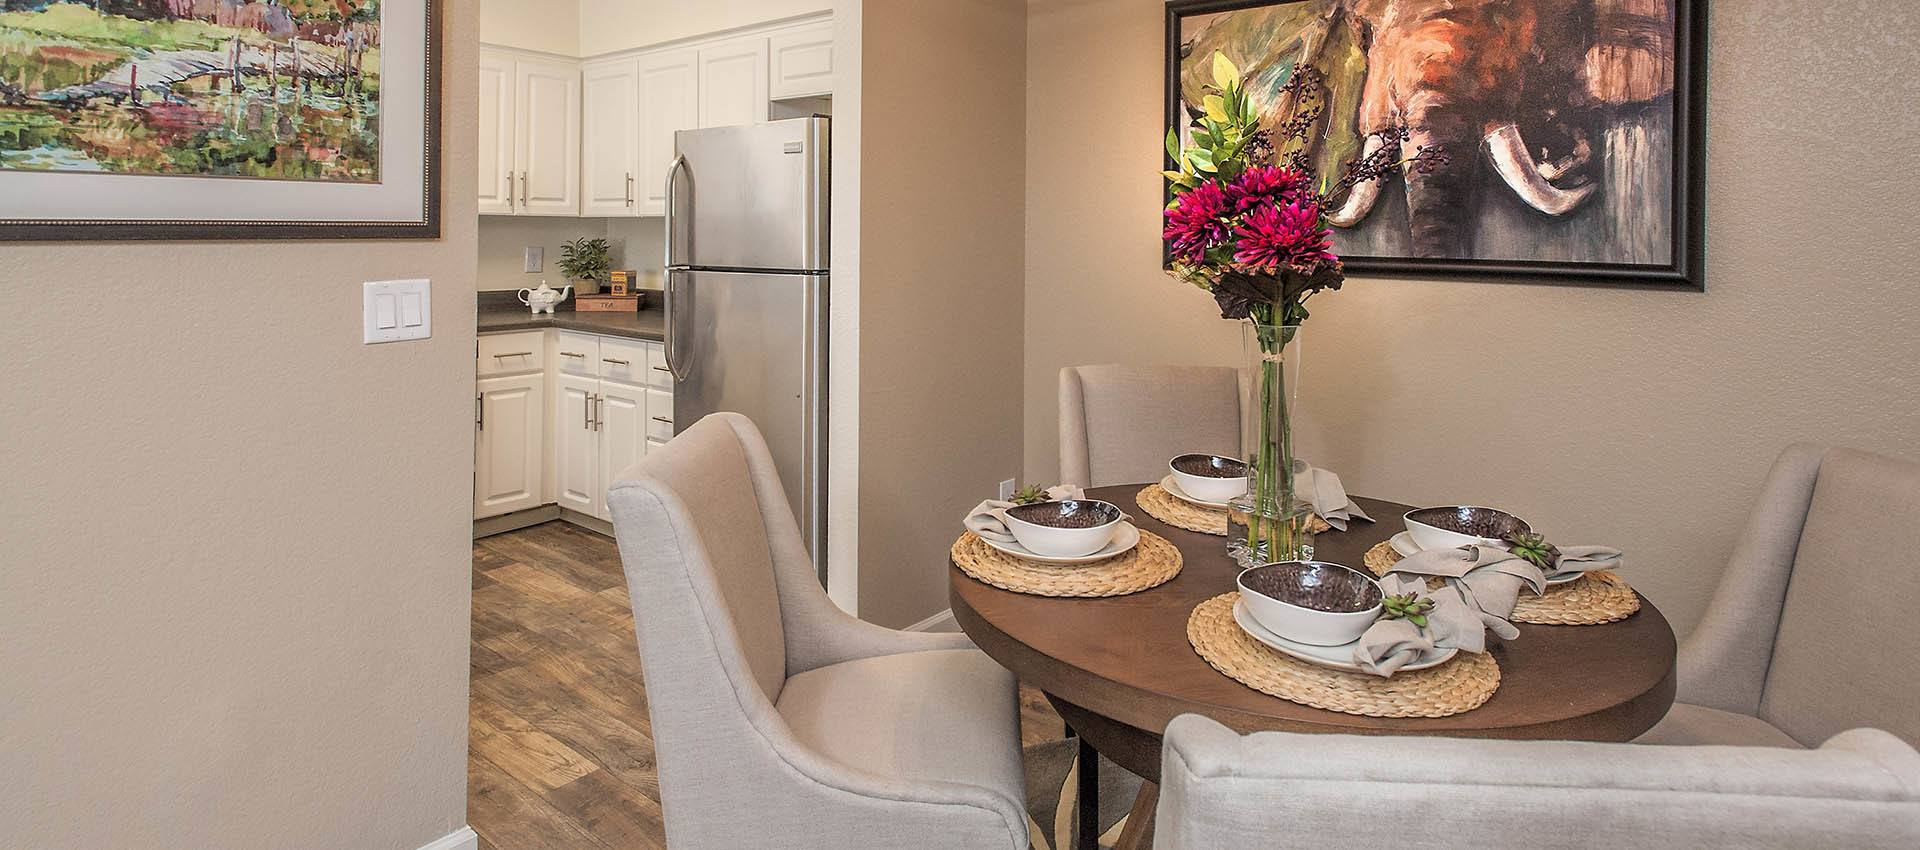 Dining Area With Kitchen View at Hidden Lake Condominium Rentals in Sacramento, CA